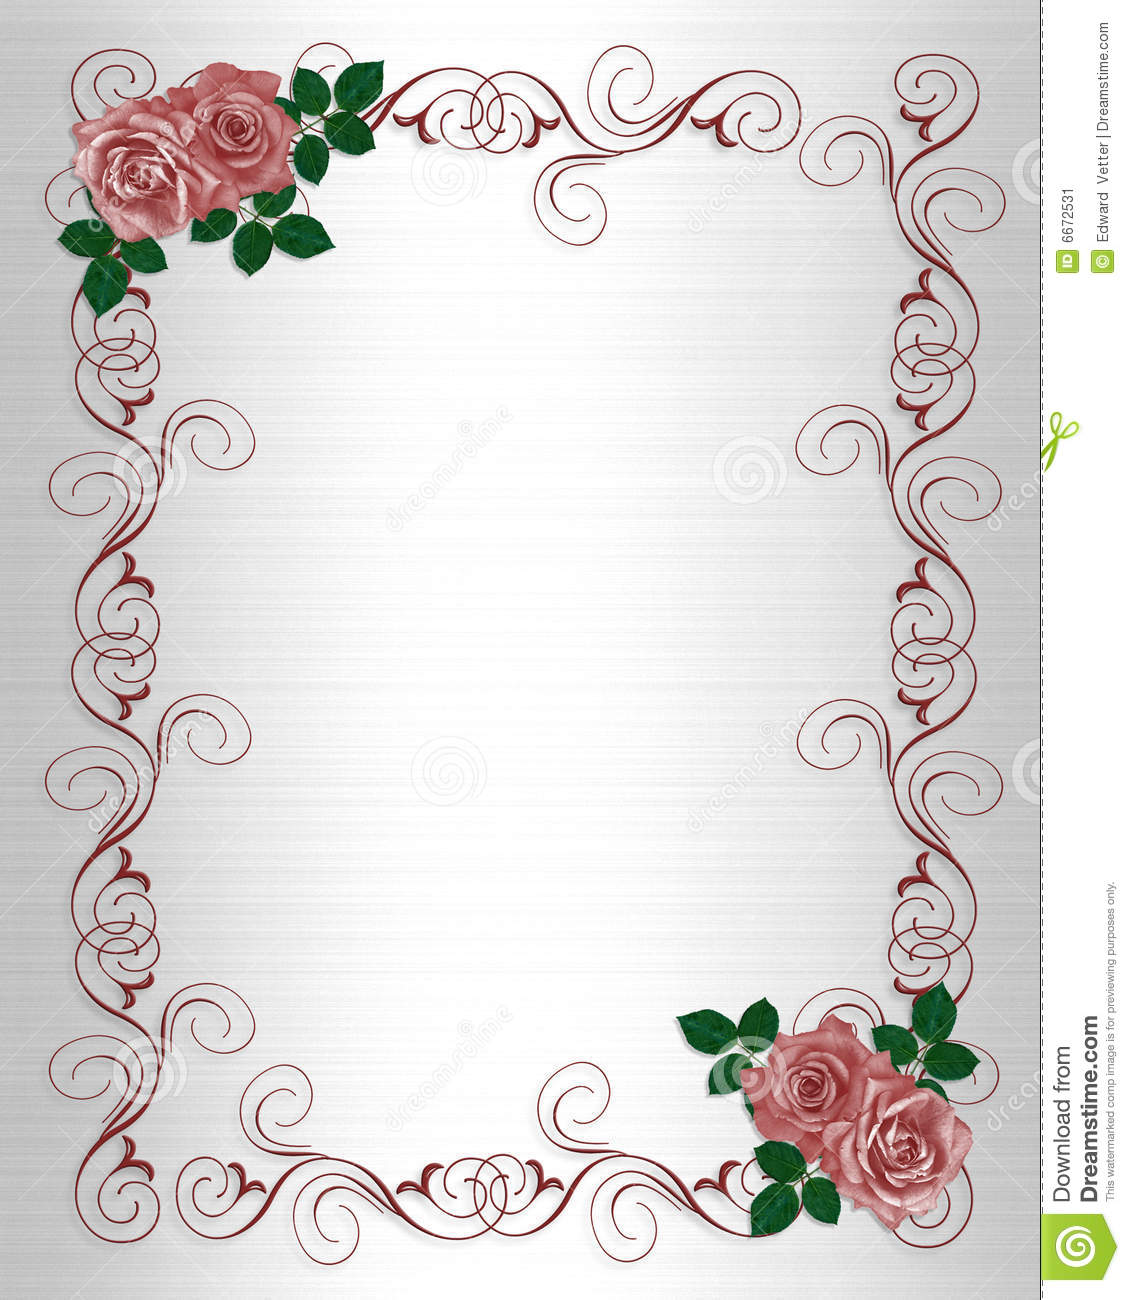 wedding invitation template red roses stock illustration